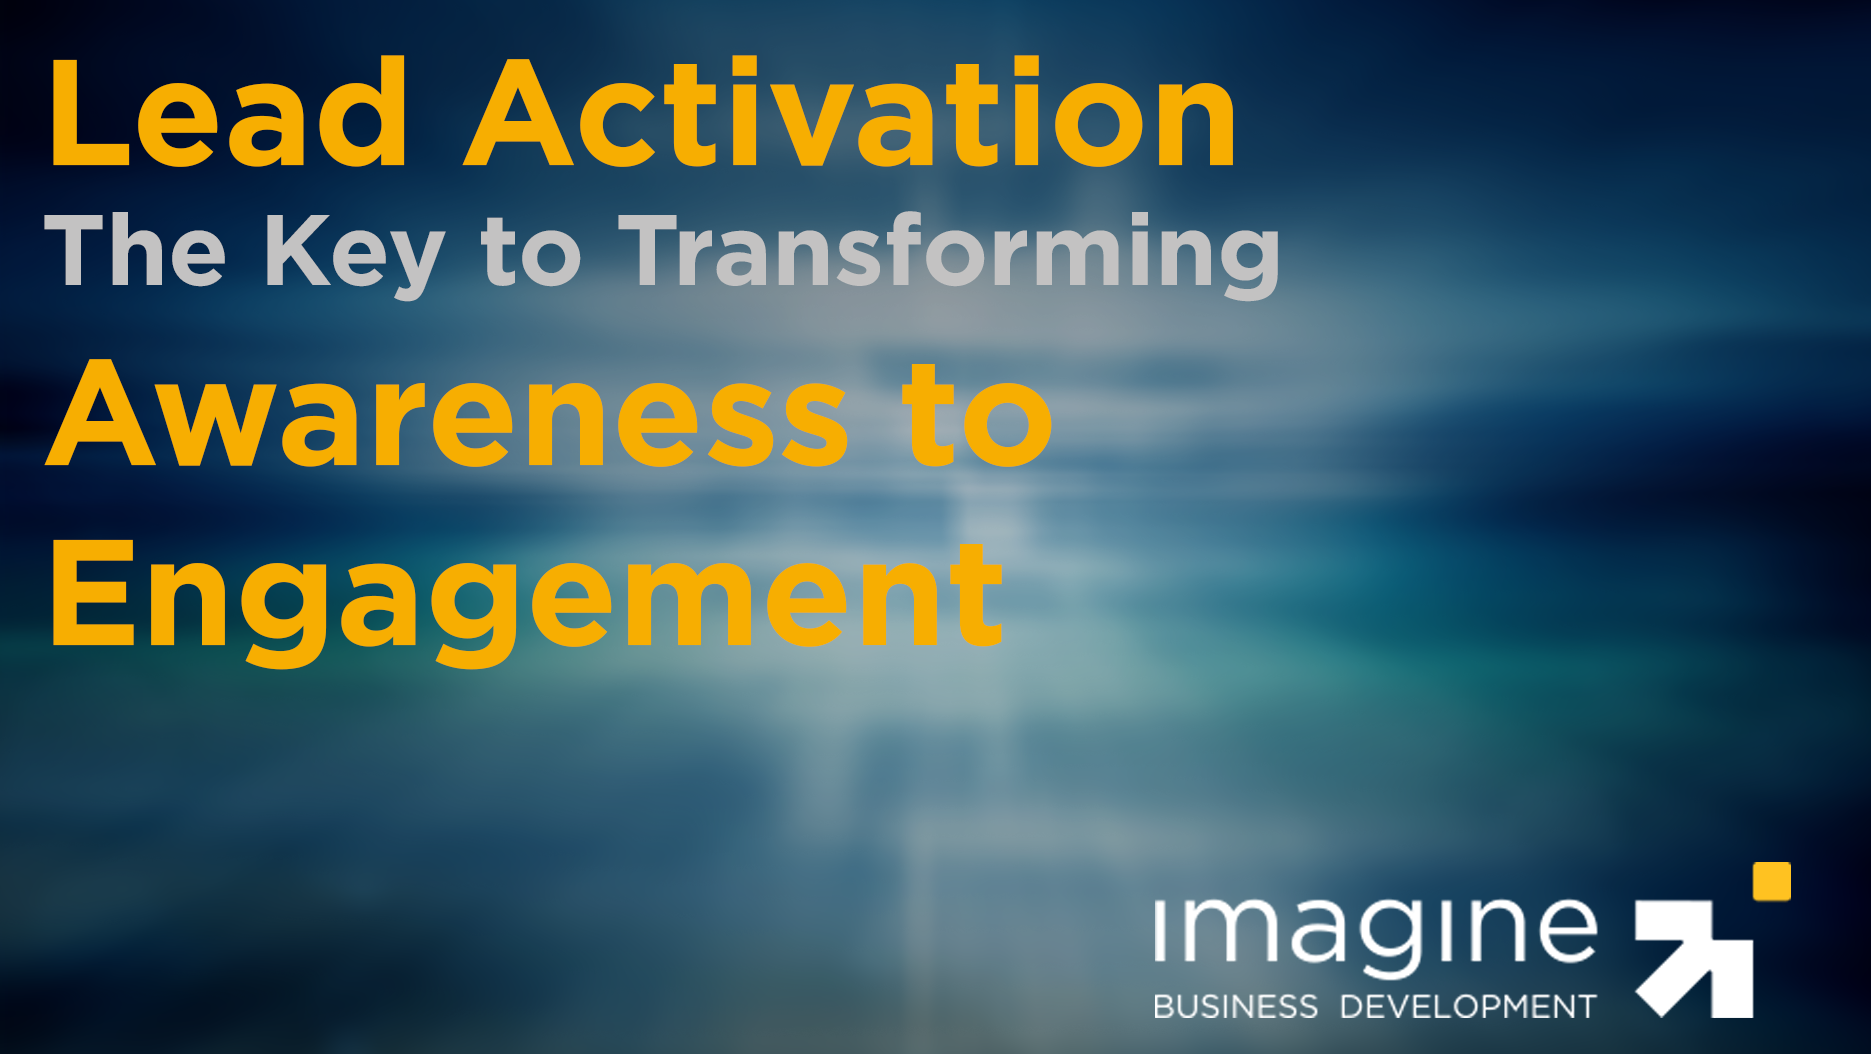 Lead Activation - Awareness to Engagement